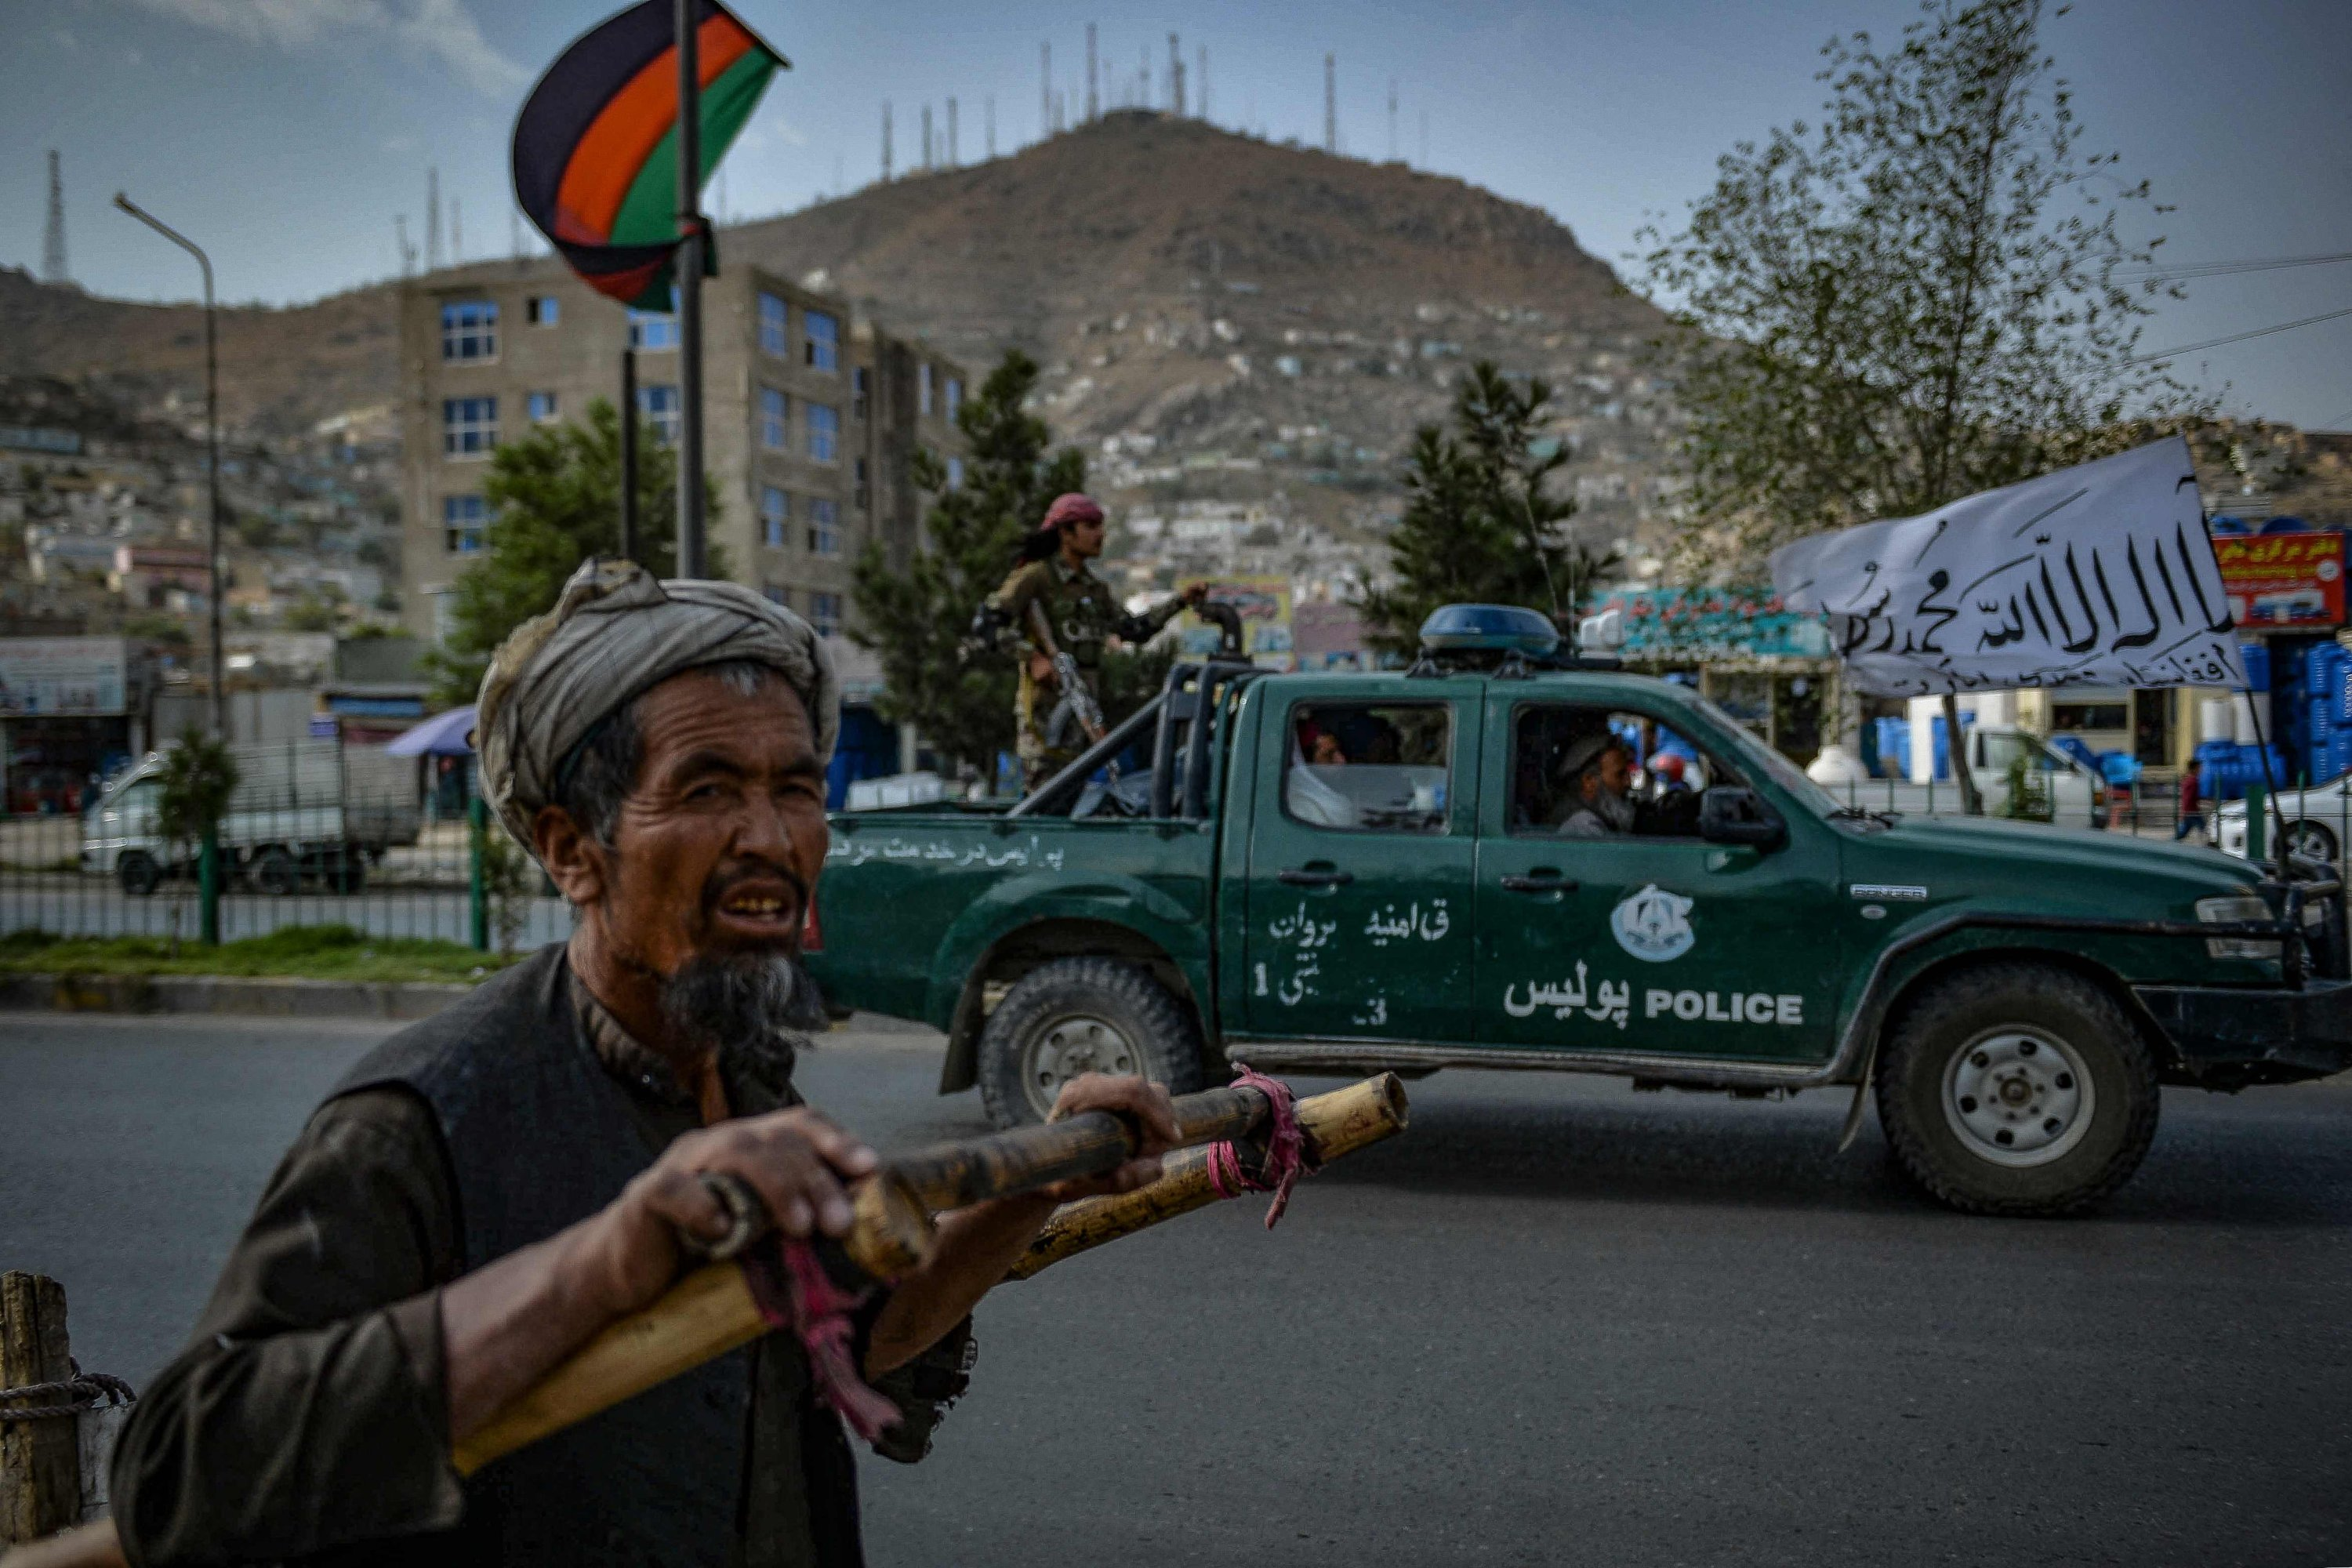 Taliban fighters patrol along a street in Kabul, Afghanistan, Aug. 31, 2021. (AFP Photo)